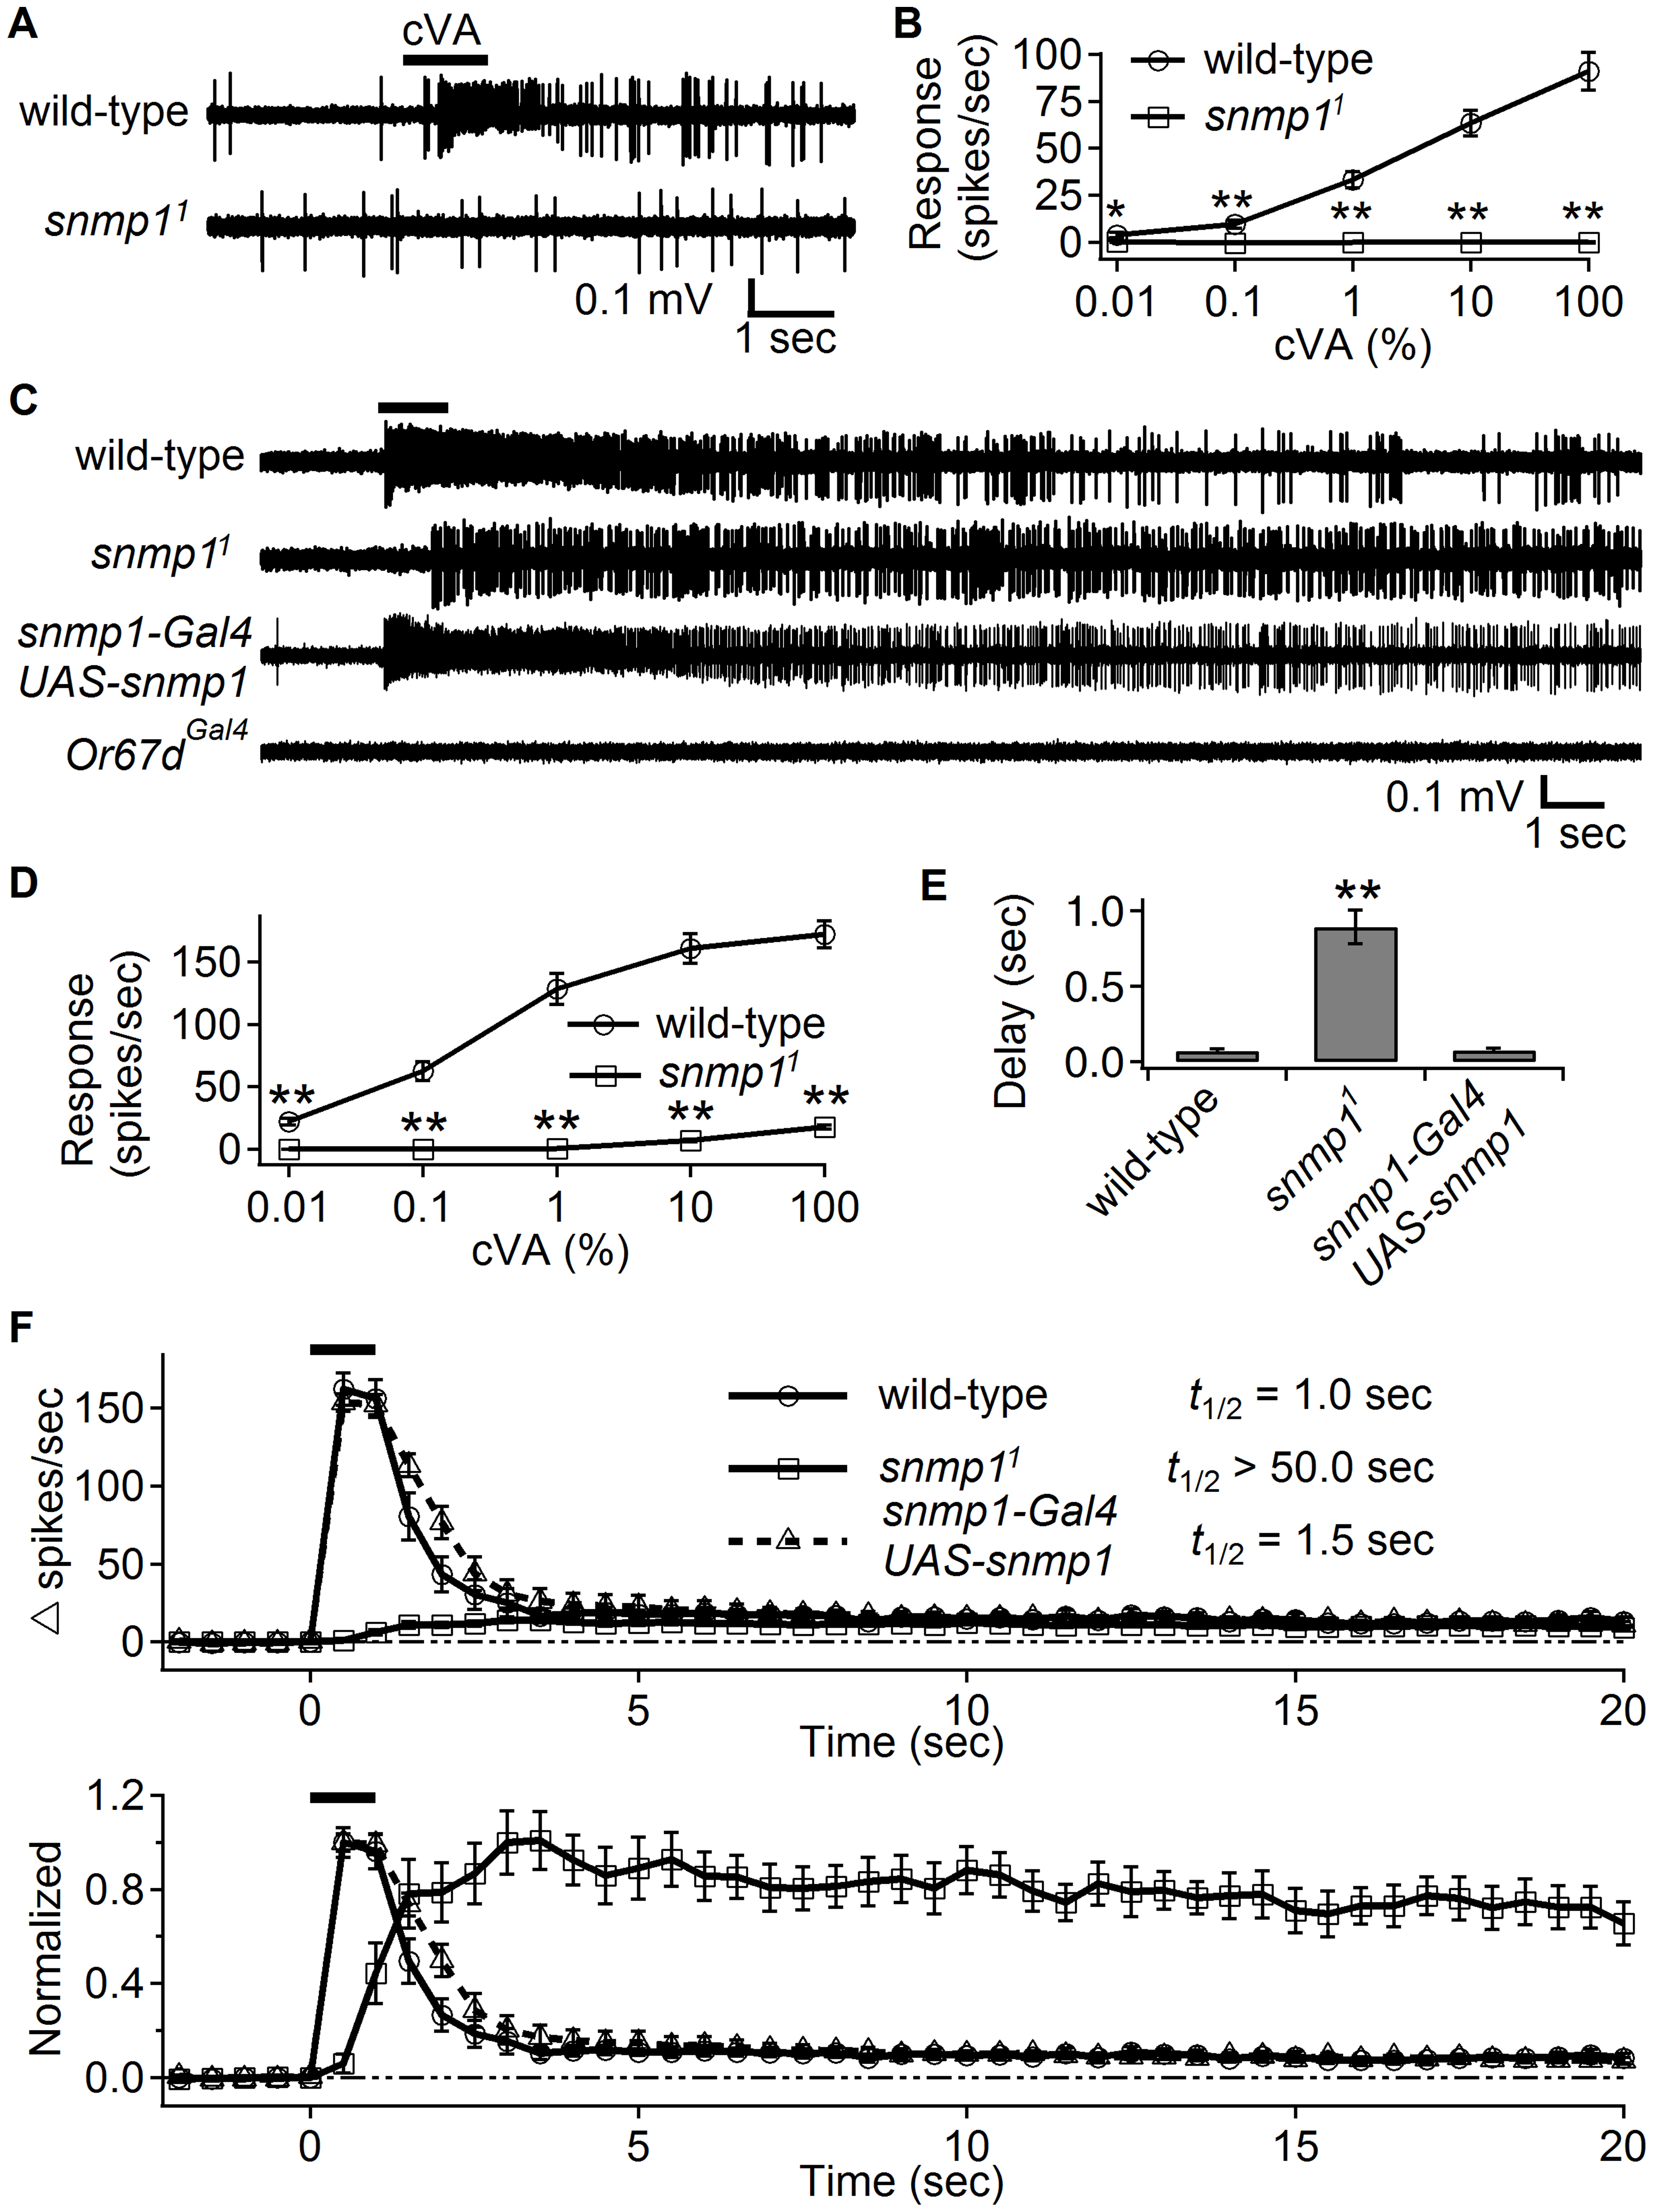 High cVA levels elicited weak responses in <i>snmp1<sup>1</sup></i>, which displayed slow activation and deactivation kinetics.